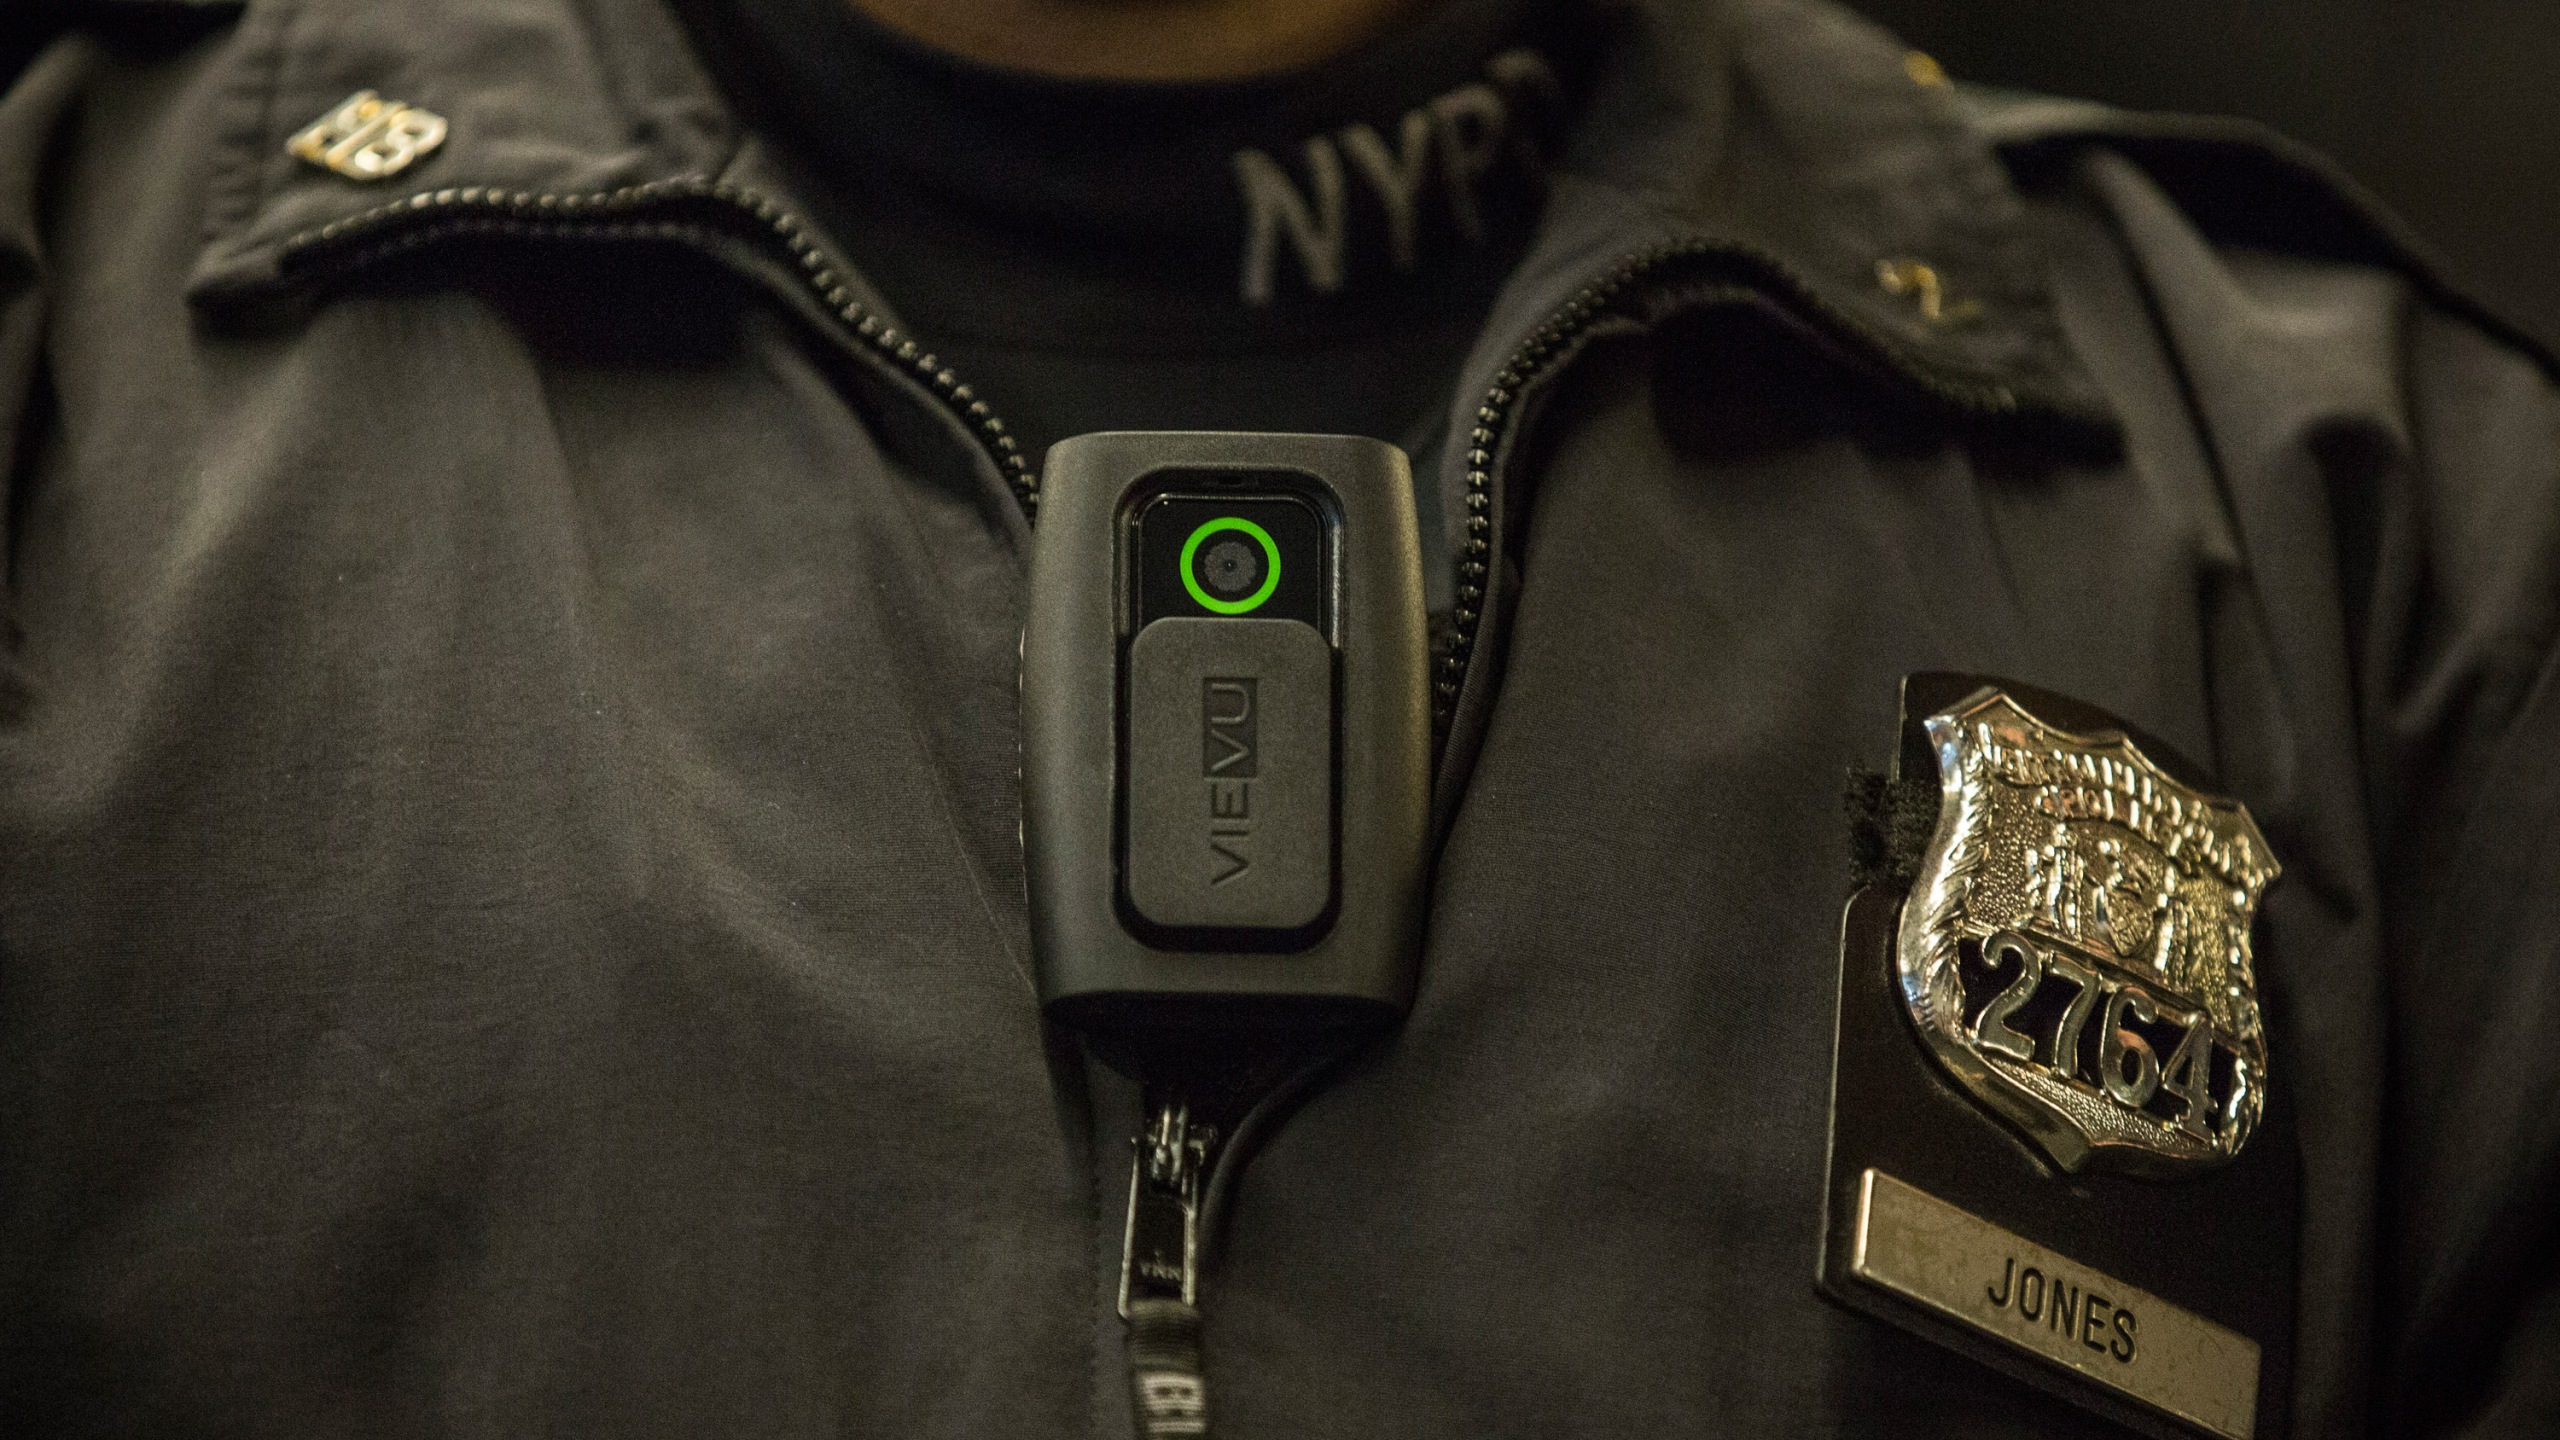 New York Police Department Officer Joshua Jones demonstrates how to use and operate a body camera during a press conference on Dec. 3, 2014 in New York City. (Credit: Andrew Burton/Getty Images)